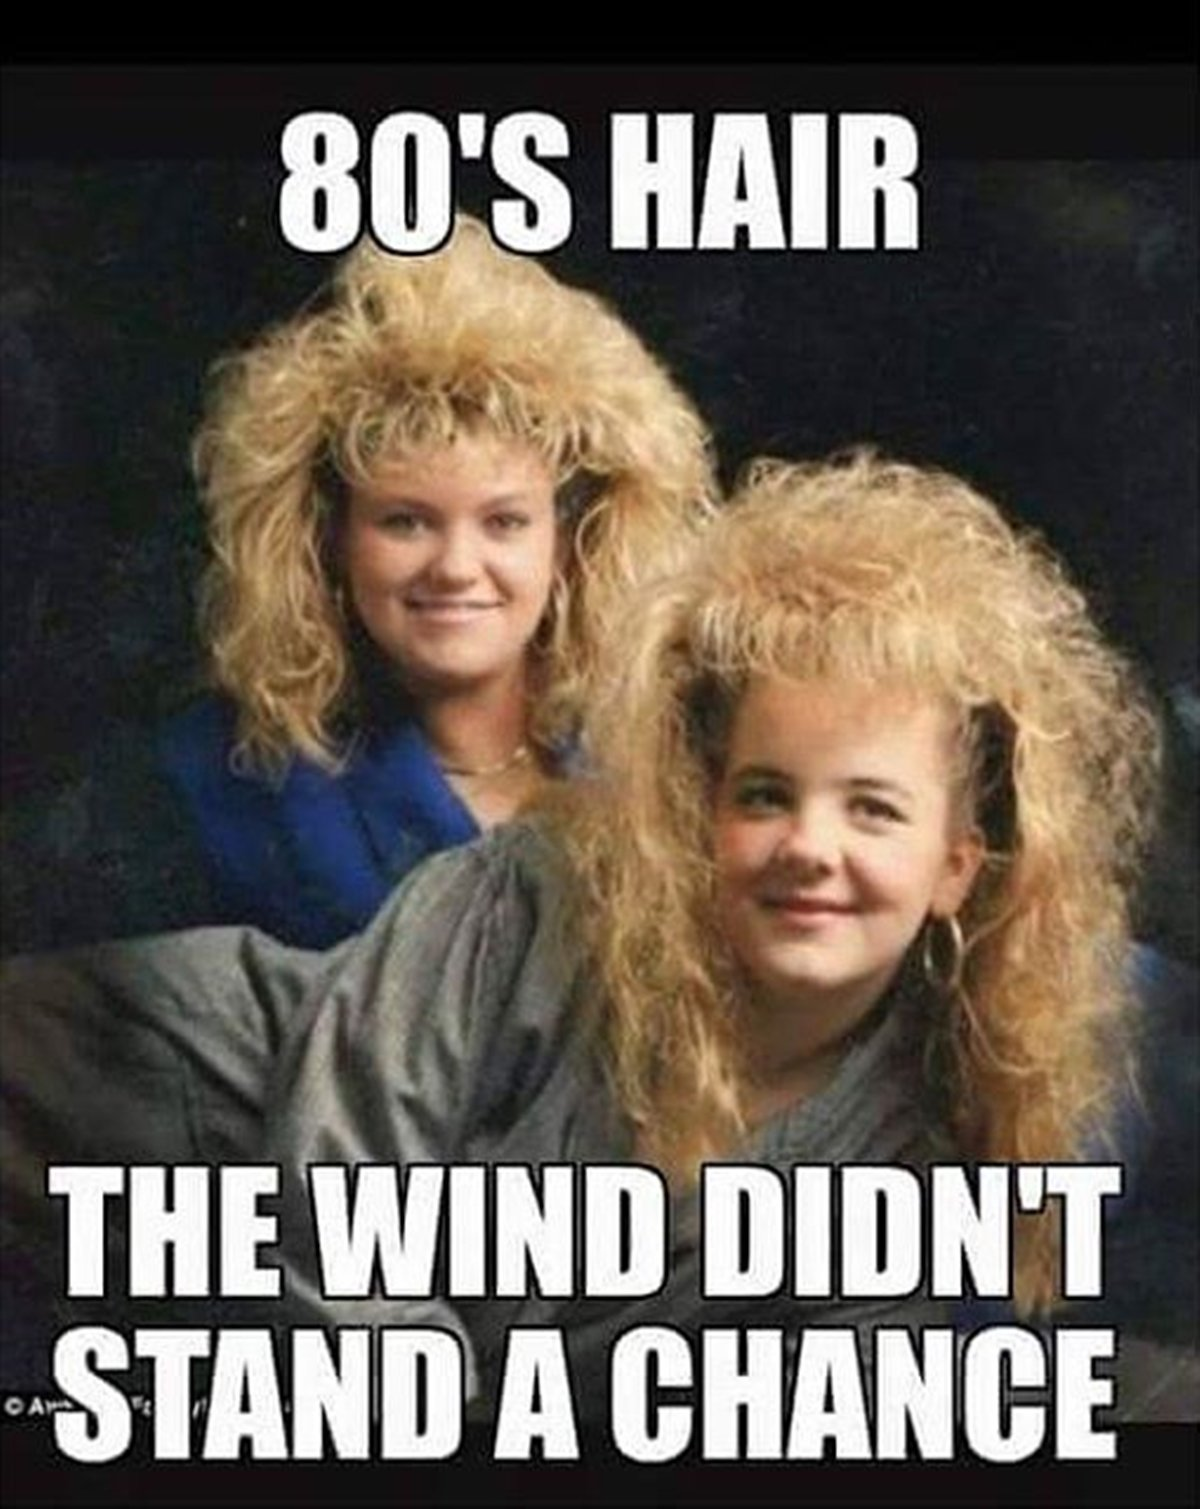 6 8 15 Hilarious Memes Only True 80s Kids Will Understand